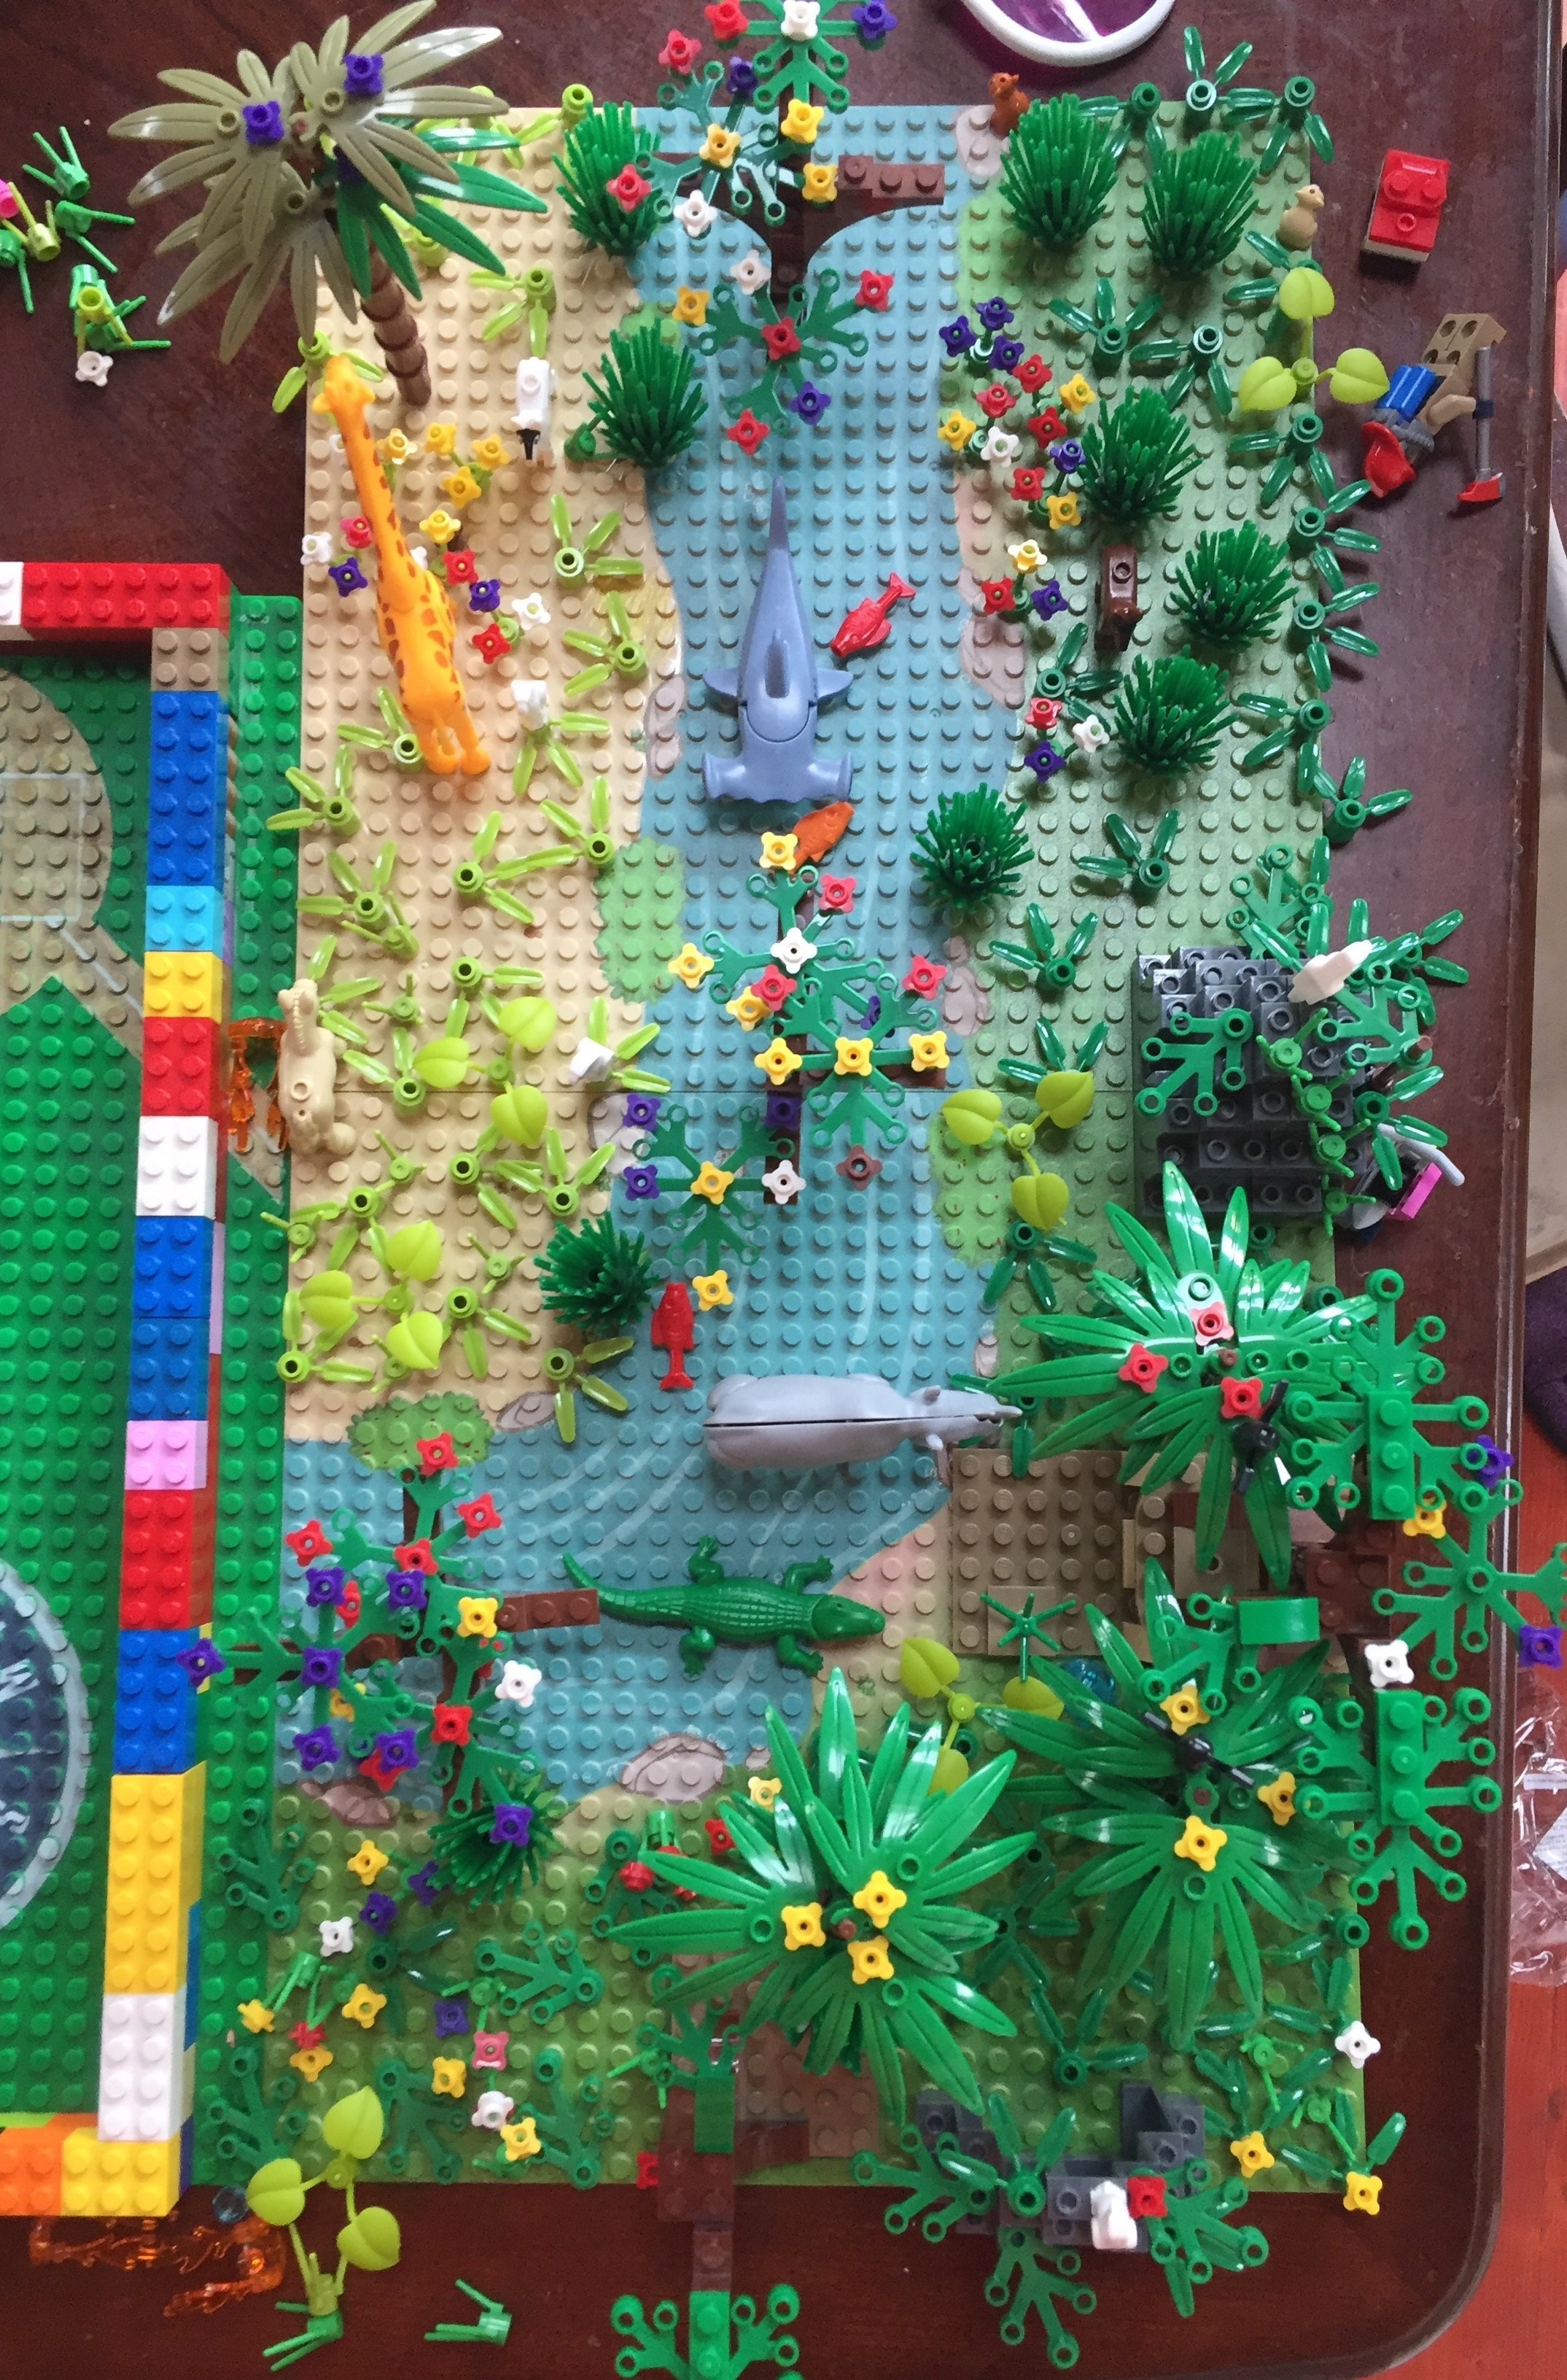 Jungle Forest Garden Park building brick set by Yamix with alligator giraffe rhino parrots and more